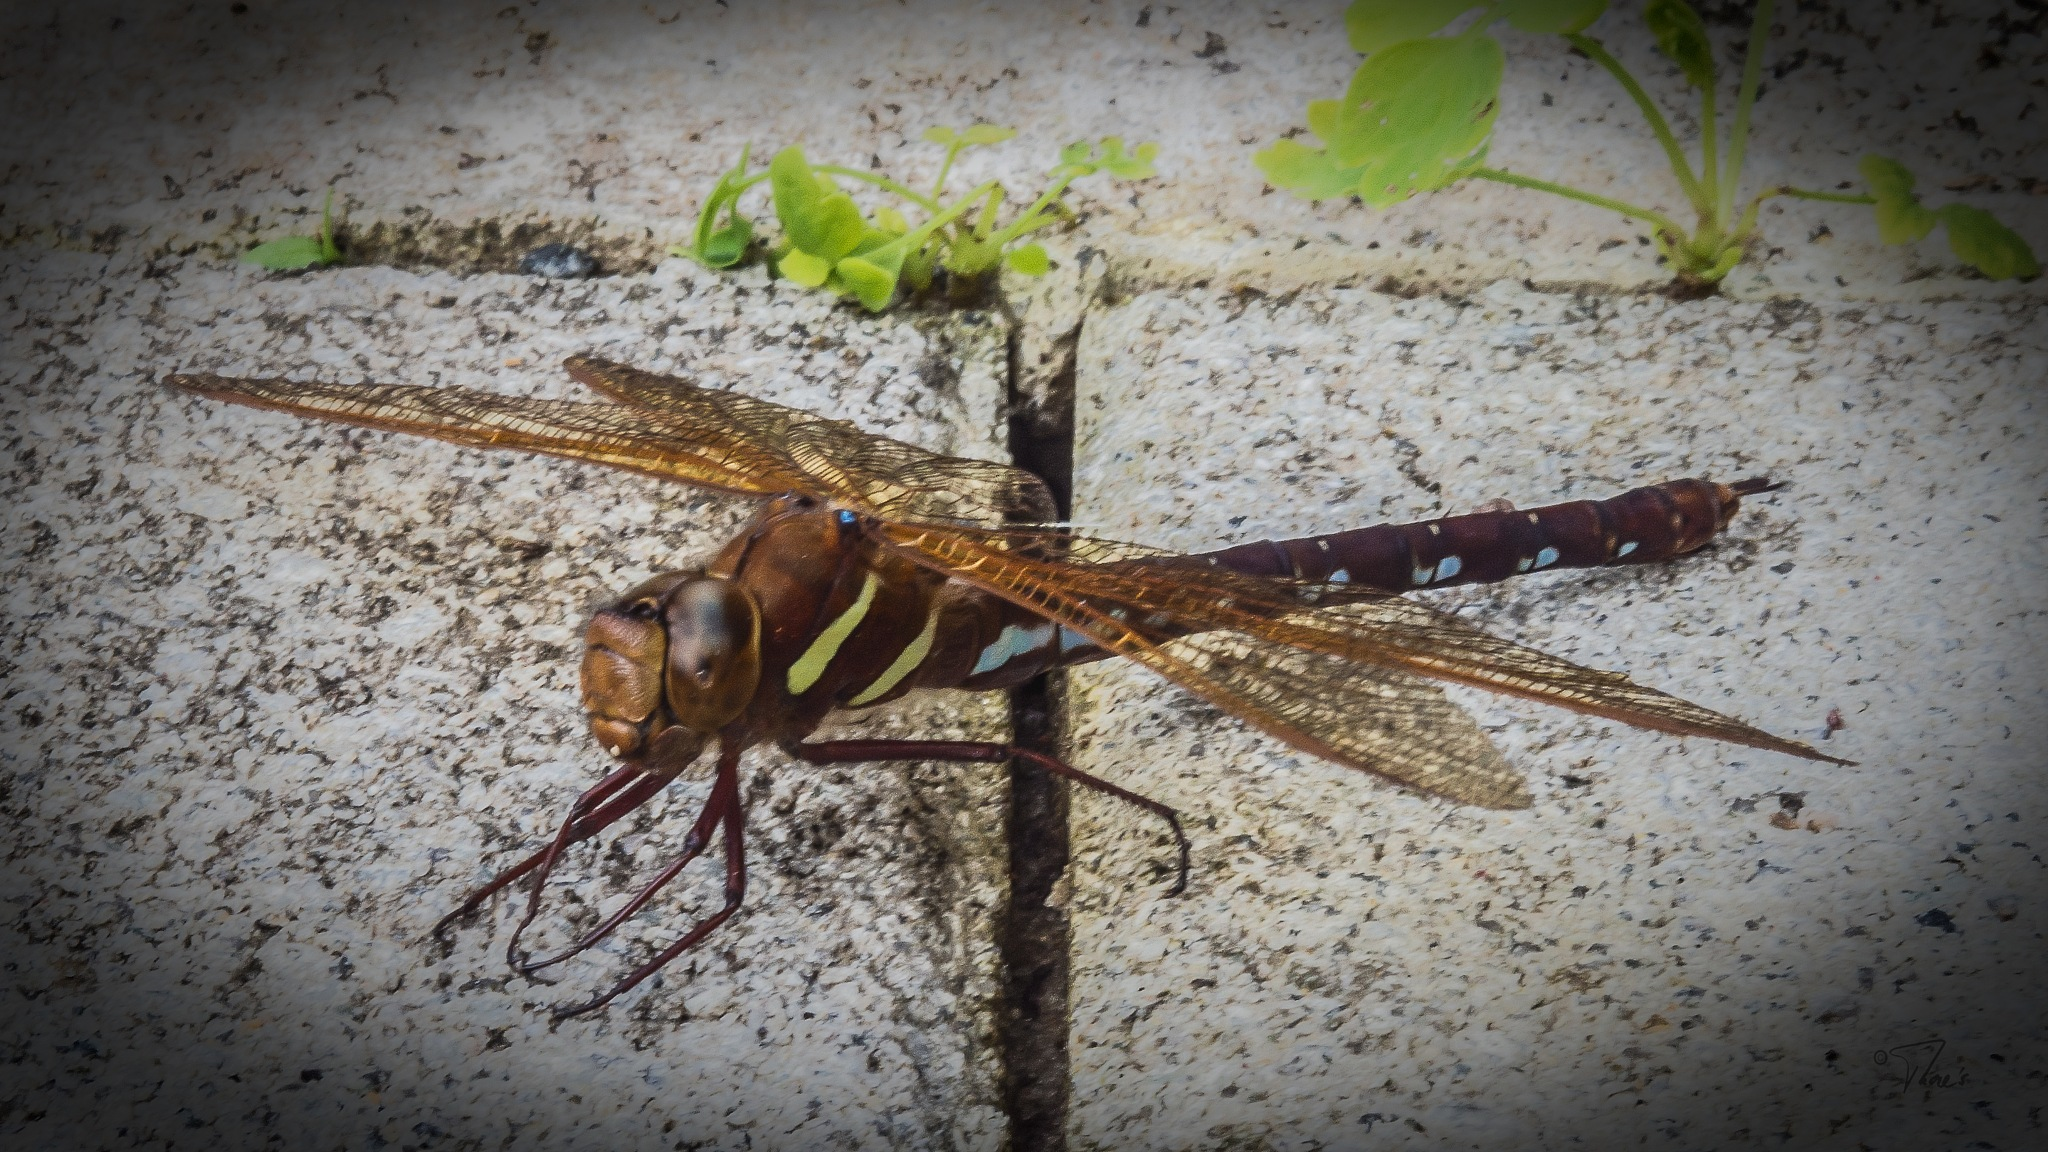 The dragenfly by Thore's photo